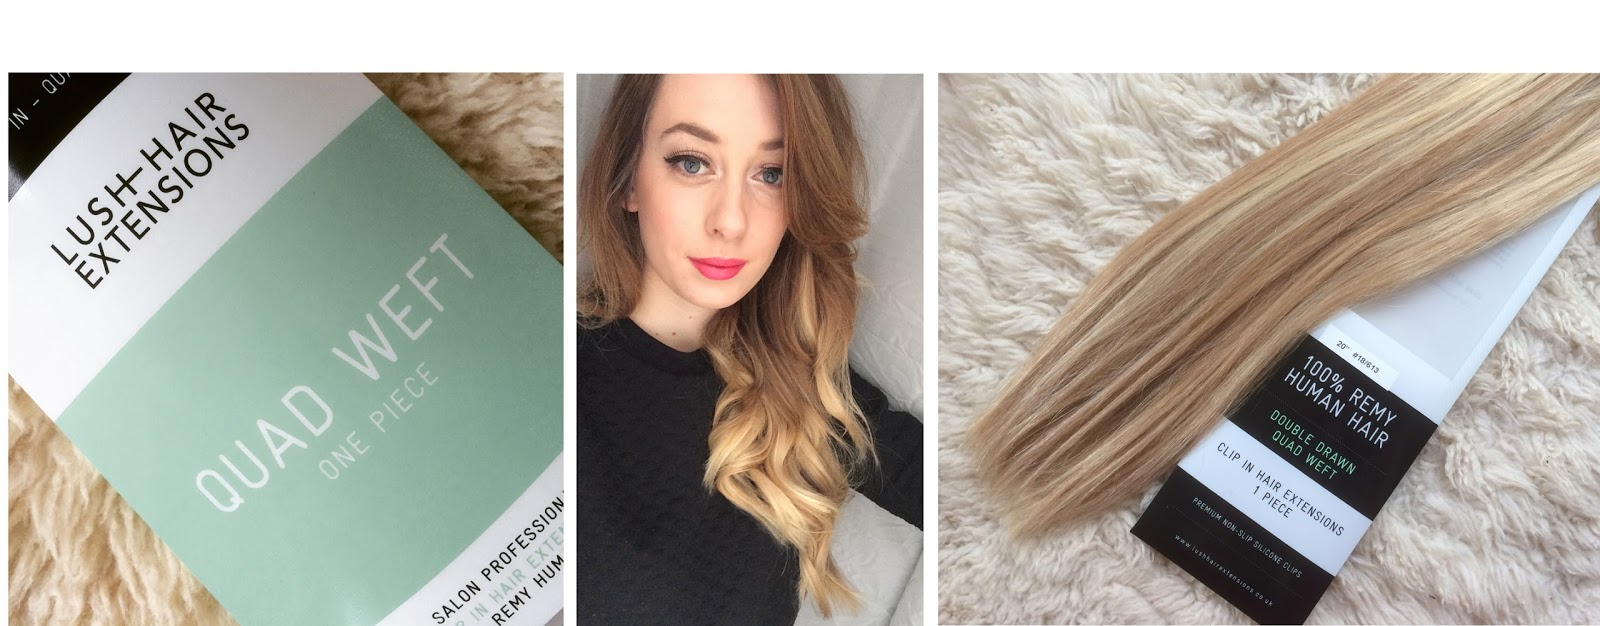 lush hair extensions review